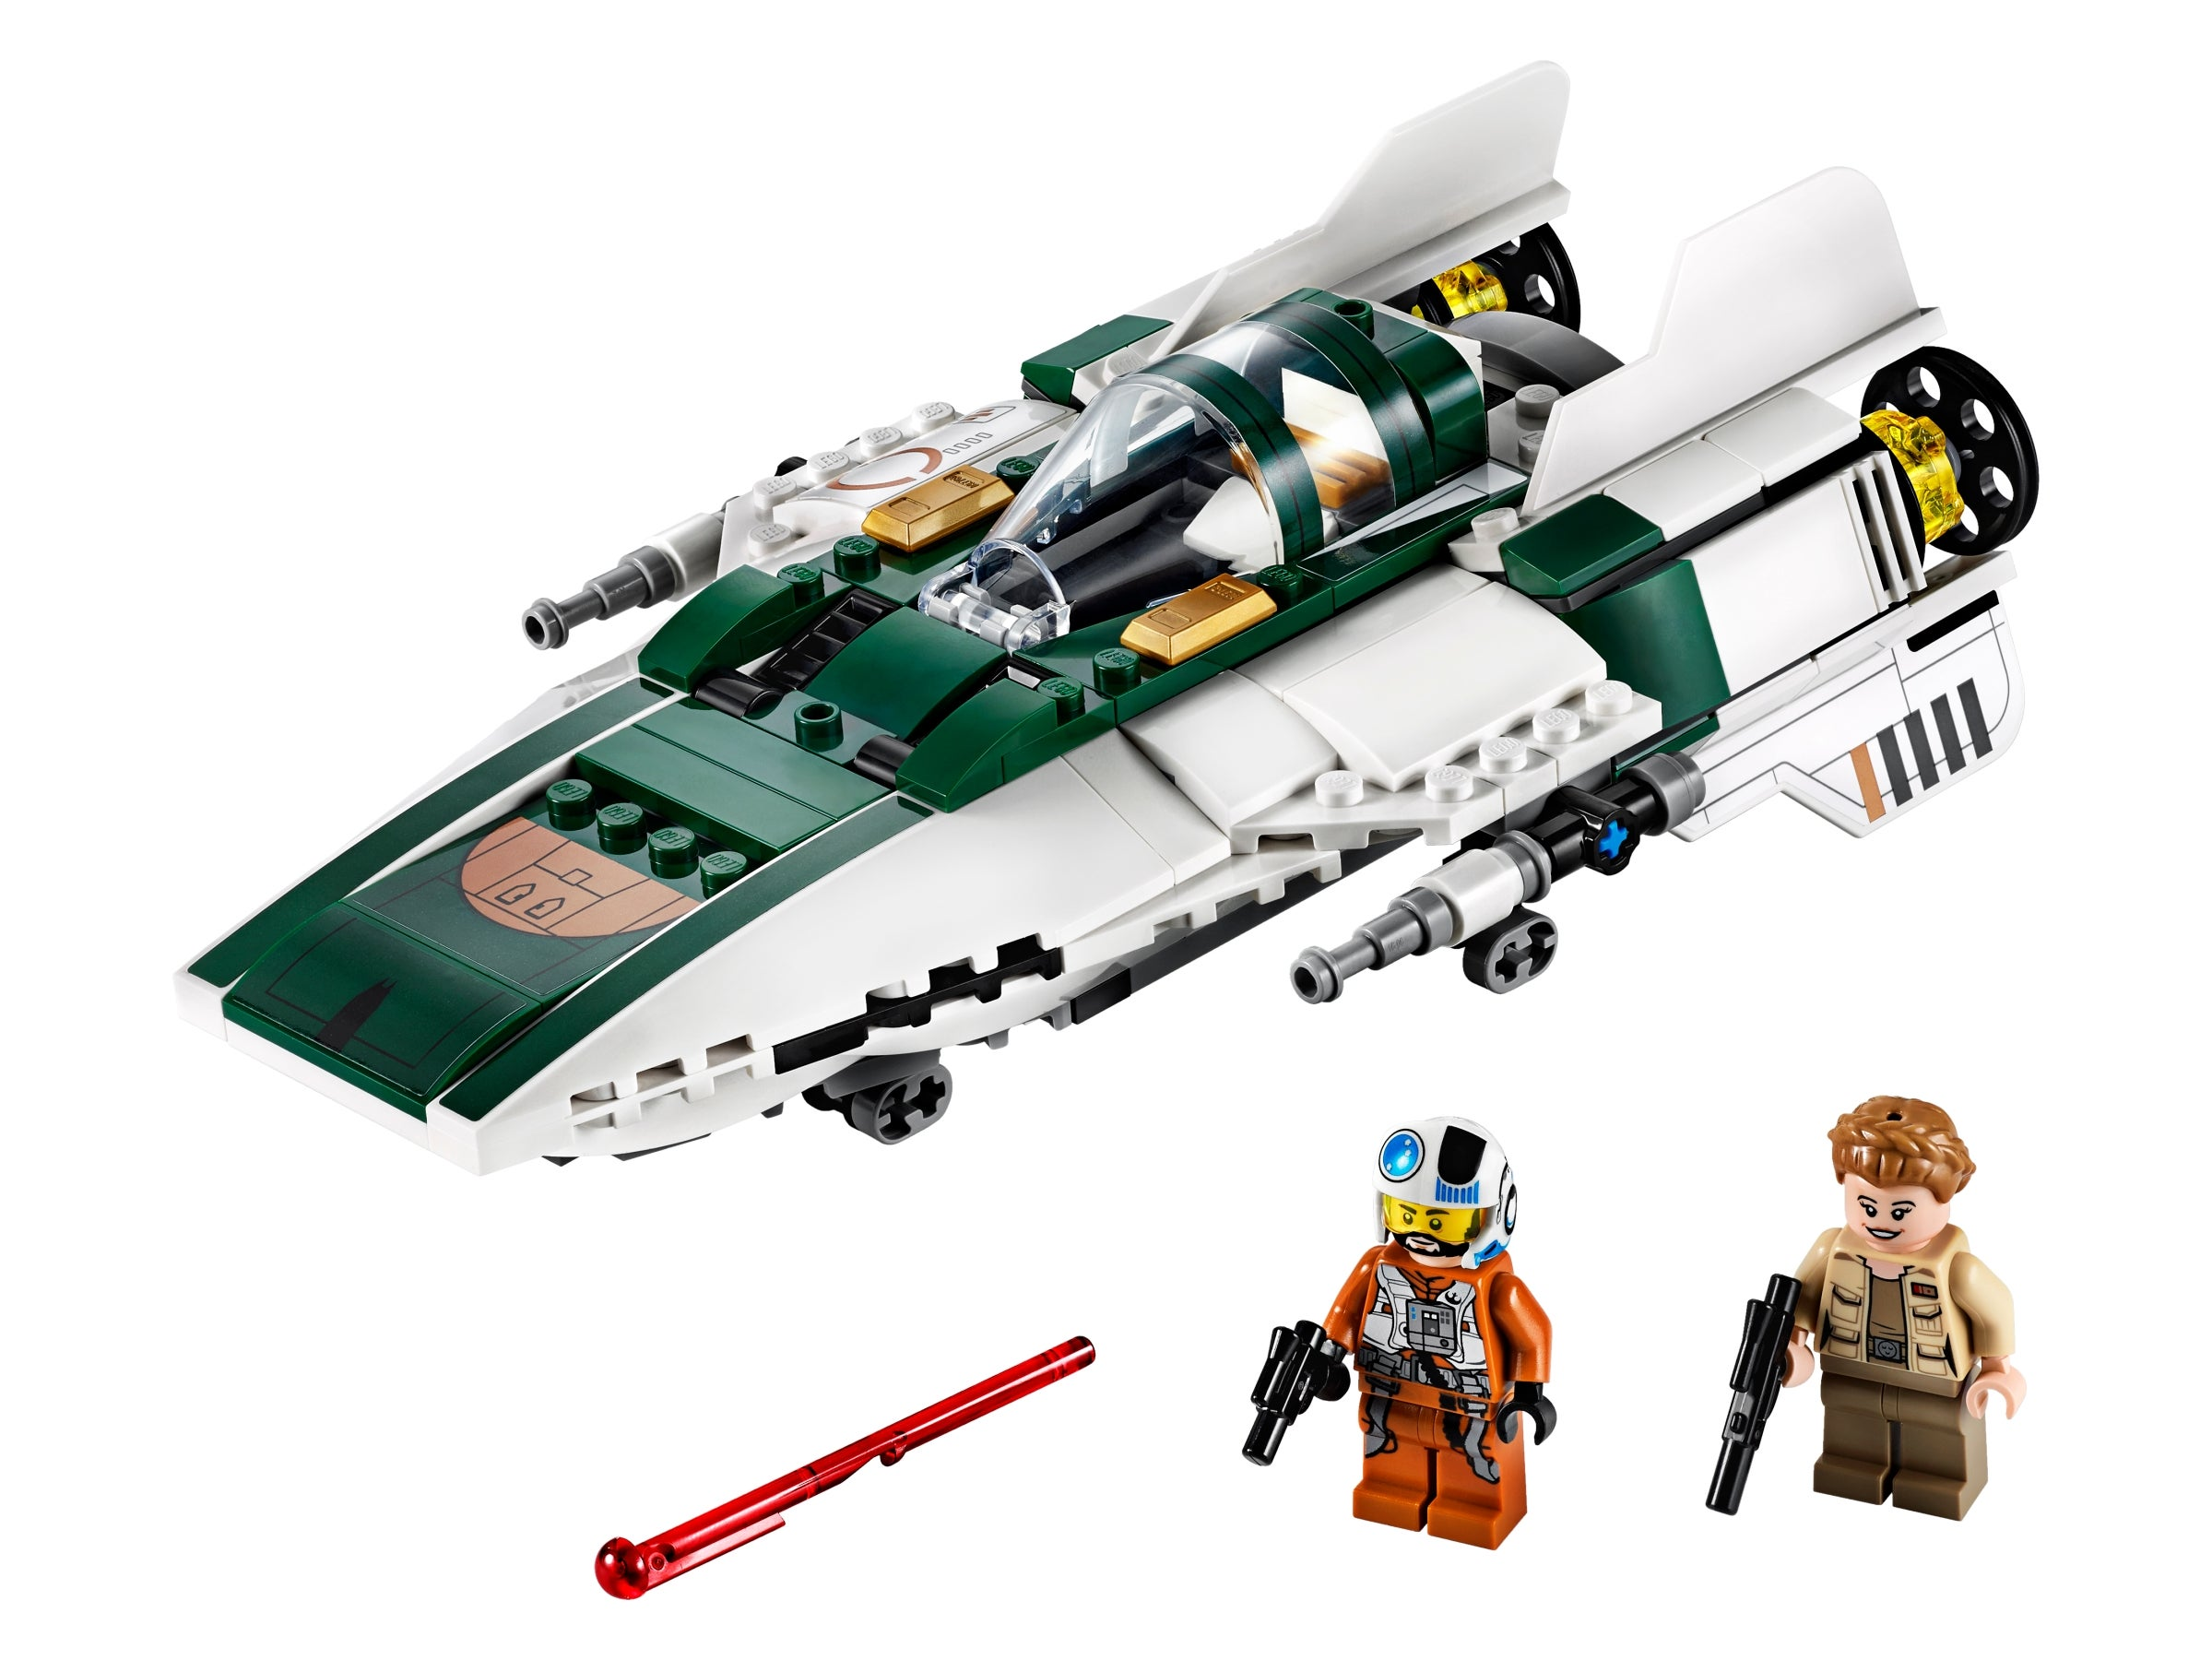 Disney Lego 75248 Star Wars The Rise of Skywalker Resistance A-Wing Starfighter